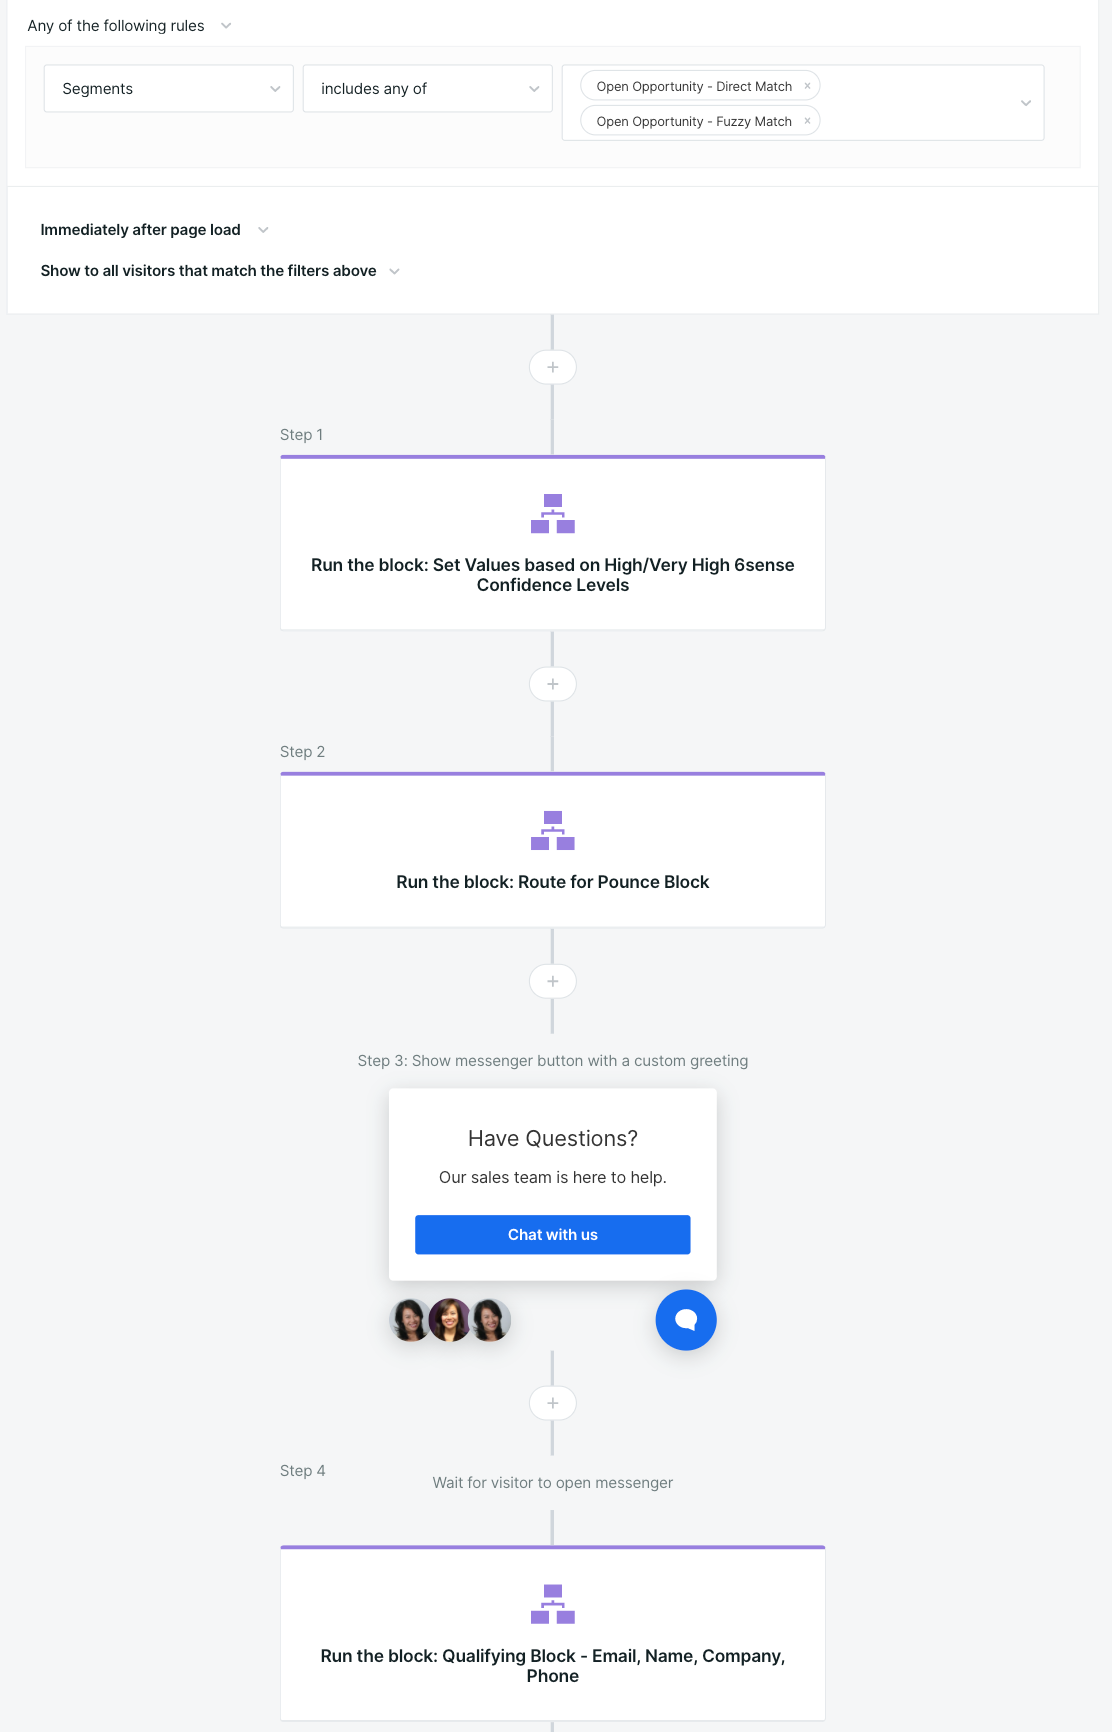 Using blocks to check confidence scores in Qualified within the Experience Builder